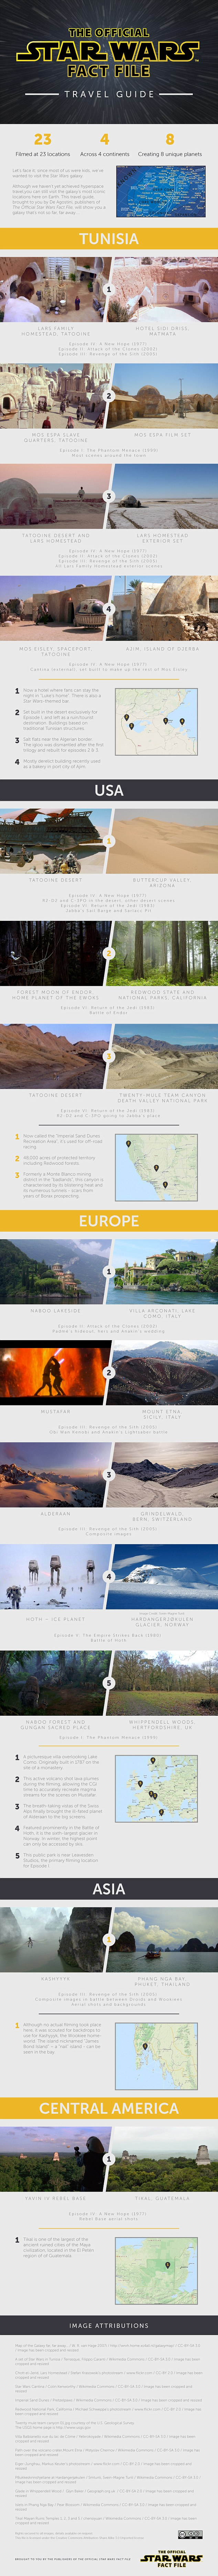 [Infographic] Star Wars Travel Guide